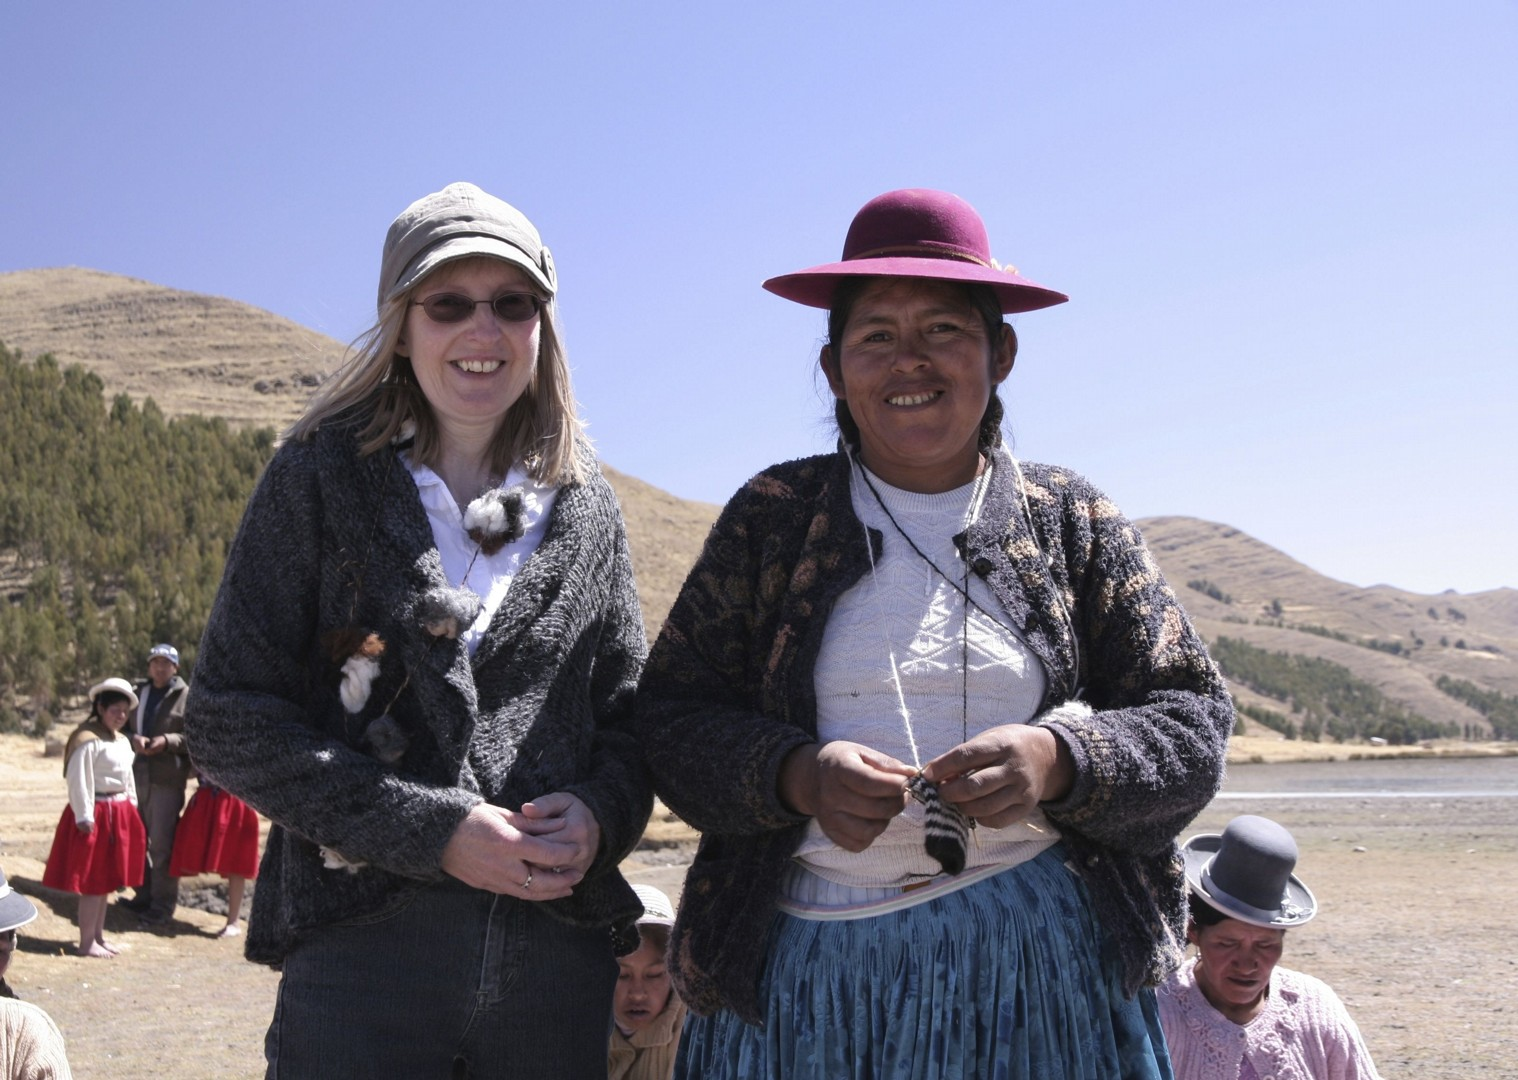 Meeting producers.jpg - Peru - Meet the People Tours